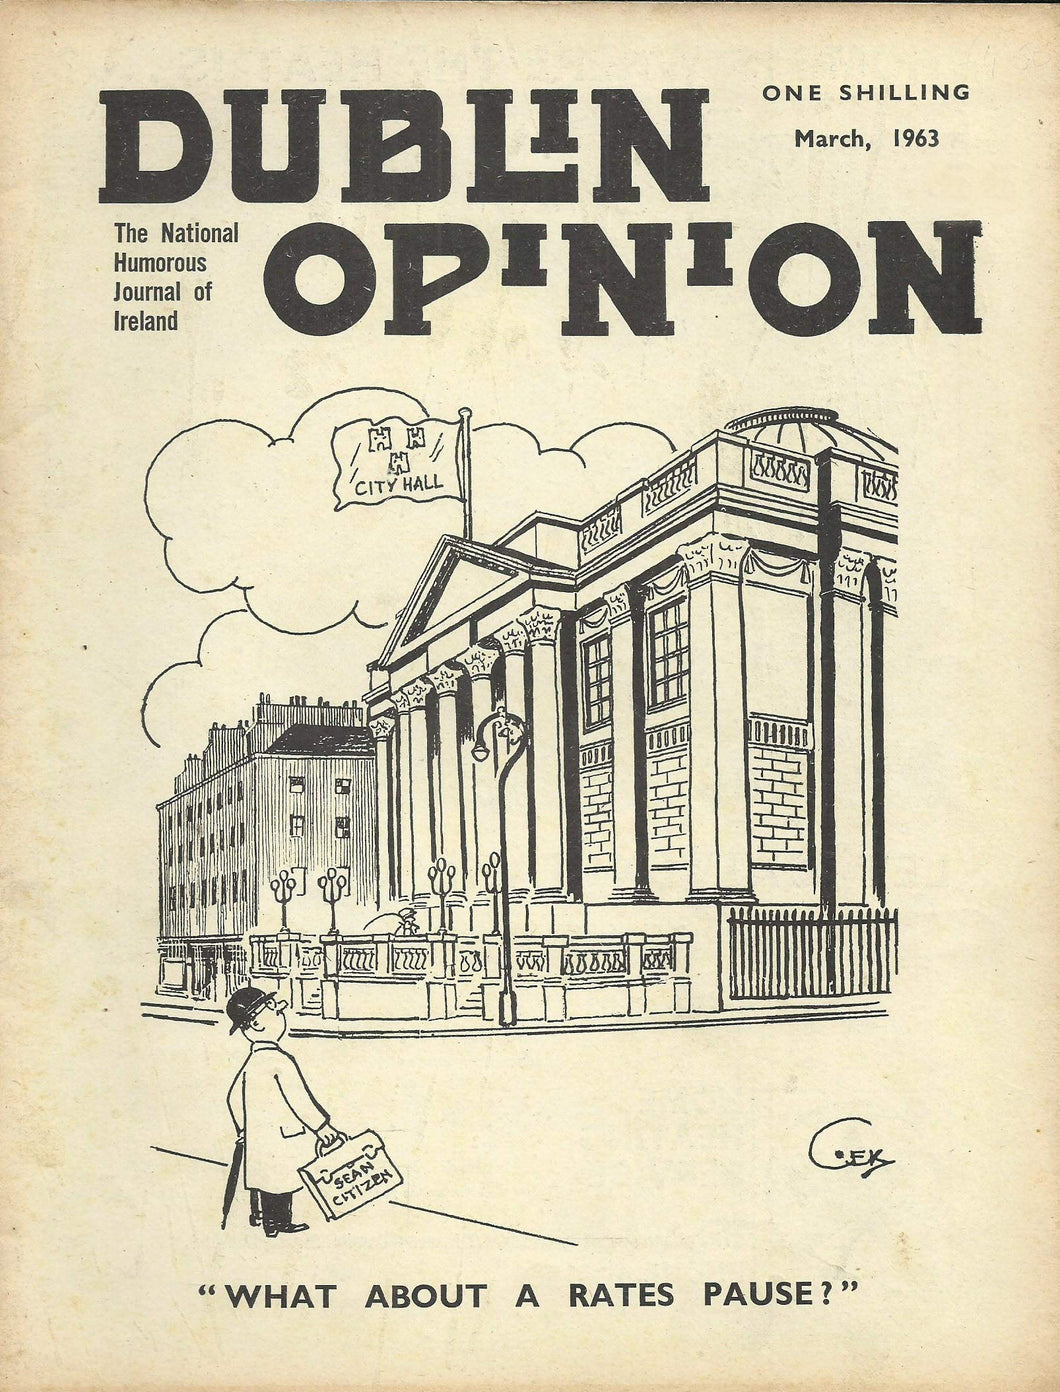 Dublin Opinion - March, 1963 - The National Humorous Journal of Ireland